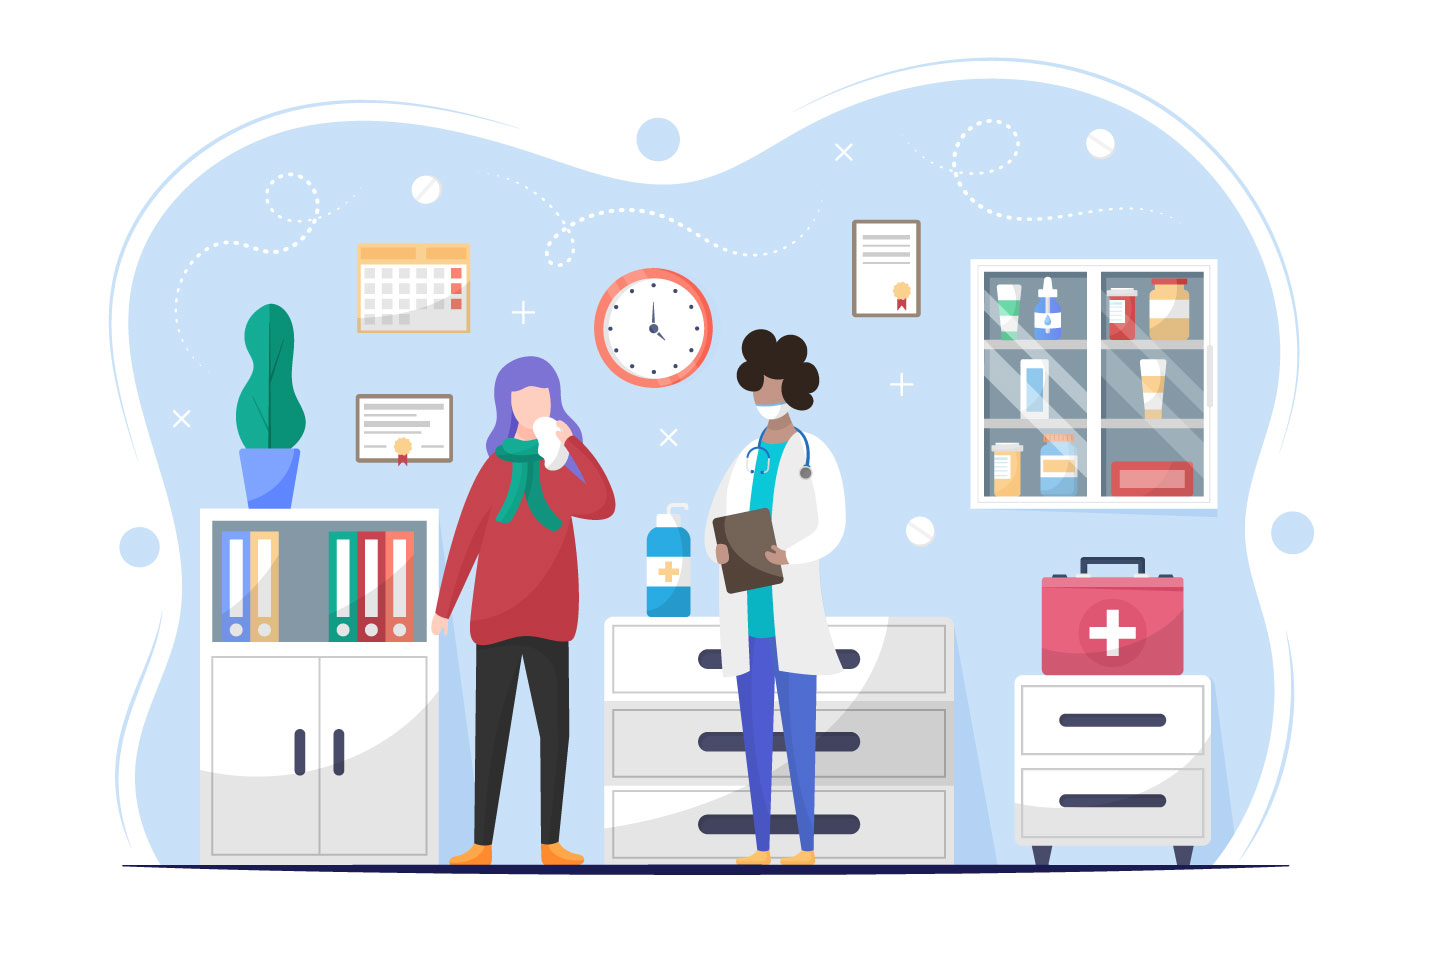 The Patient Came to the Doctor Vector Illustration